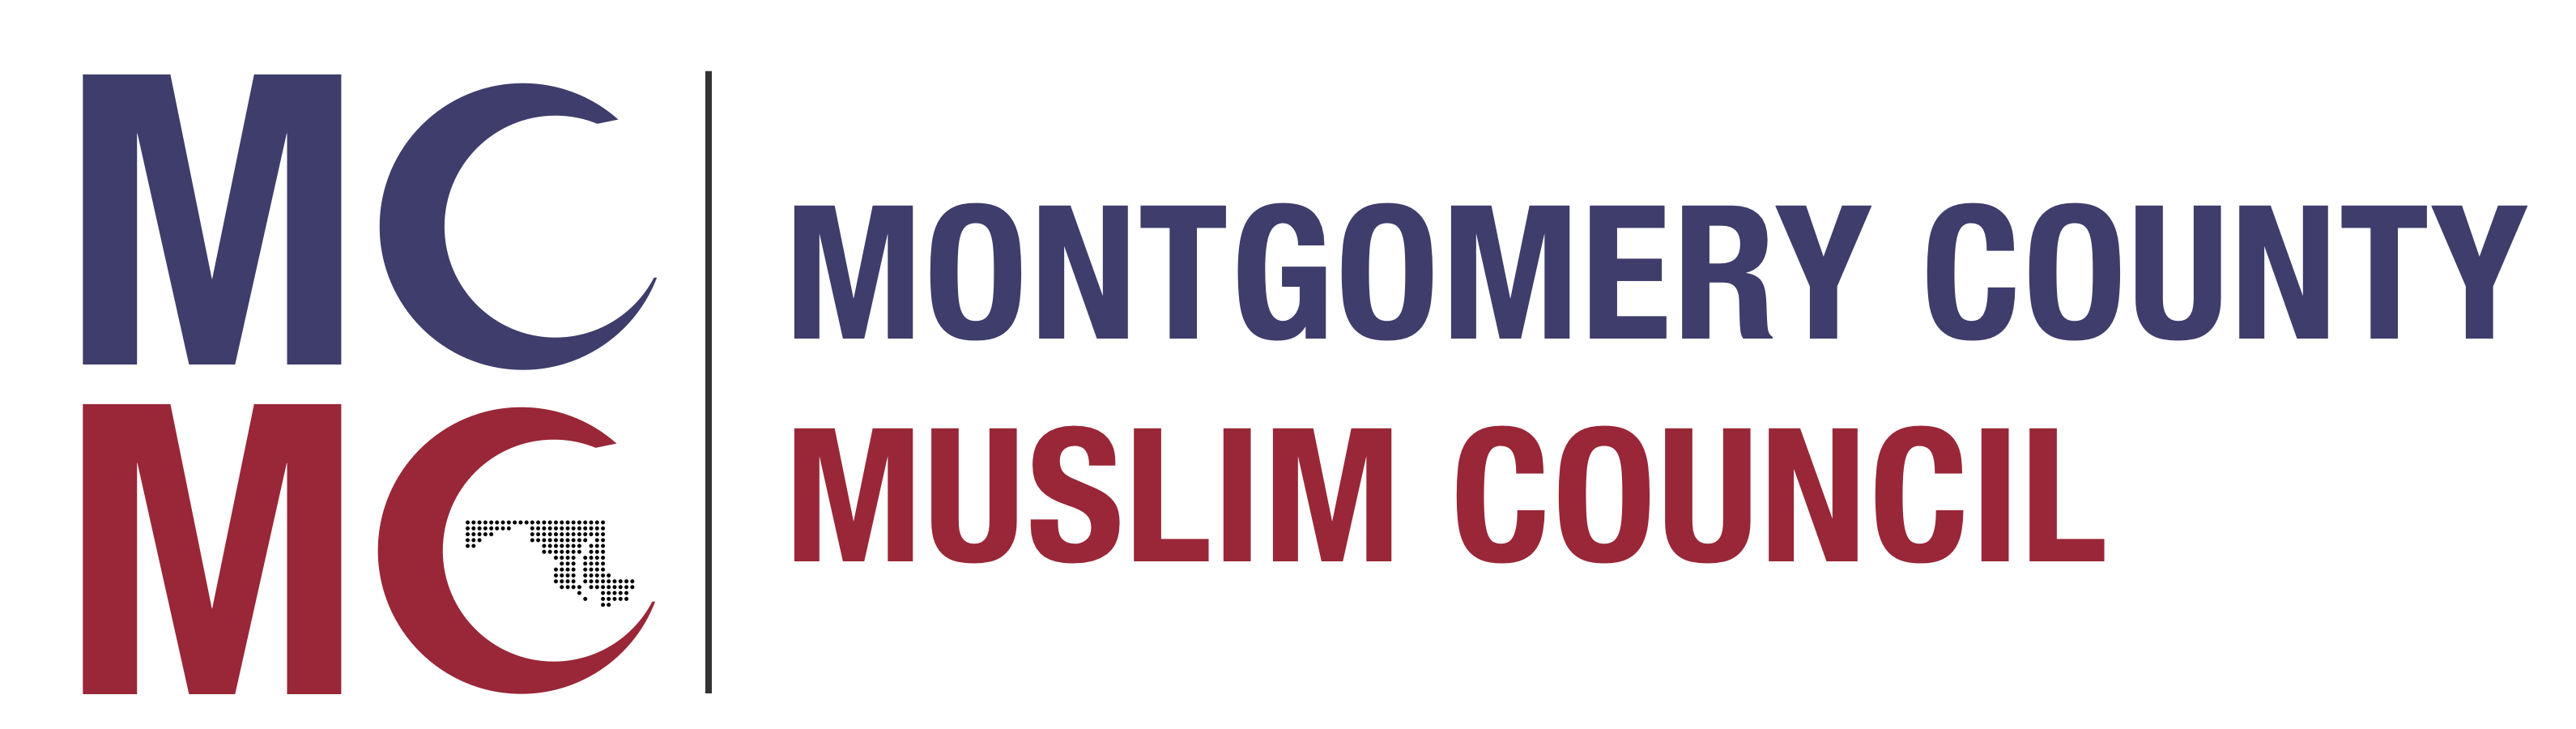 Montgomery County Muslim Council